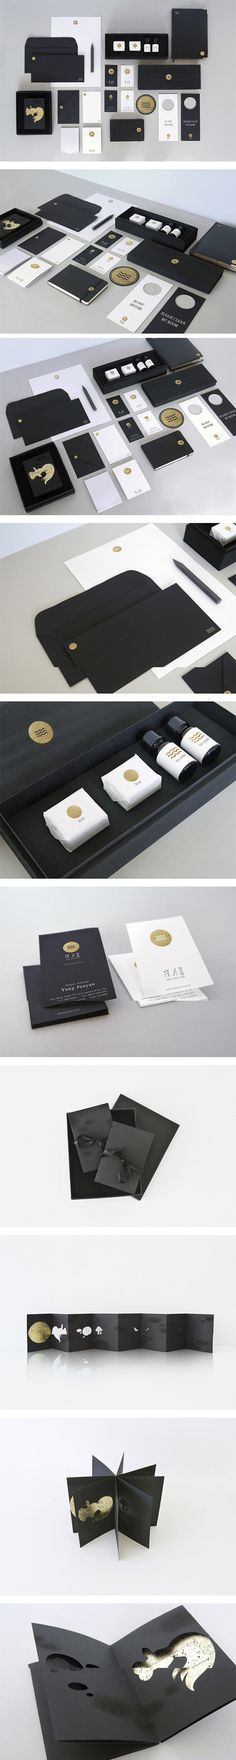 MOON WATER HOME HOTEL | Shou-Wei Tsai #packaging #branding #marketing PD